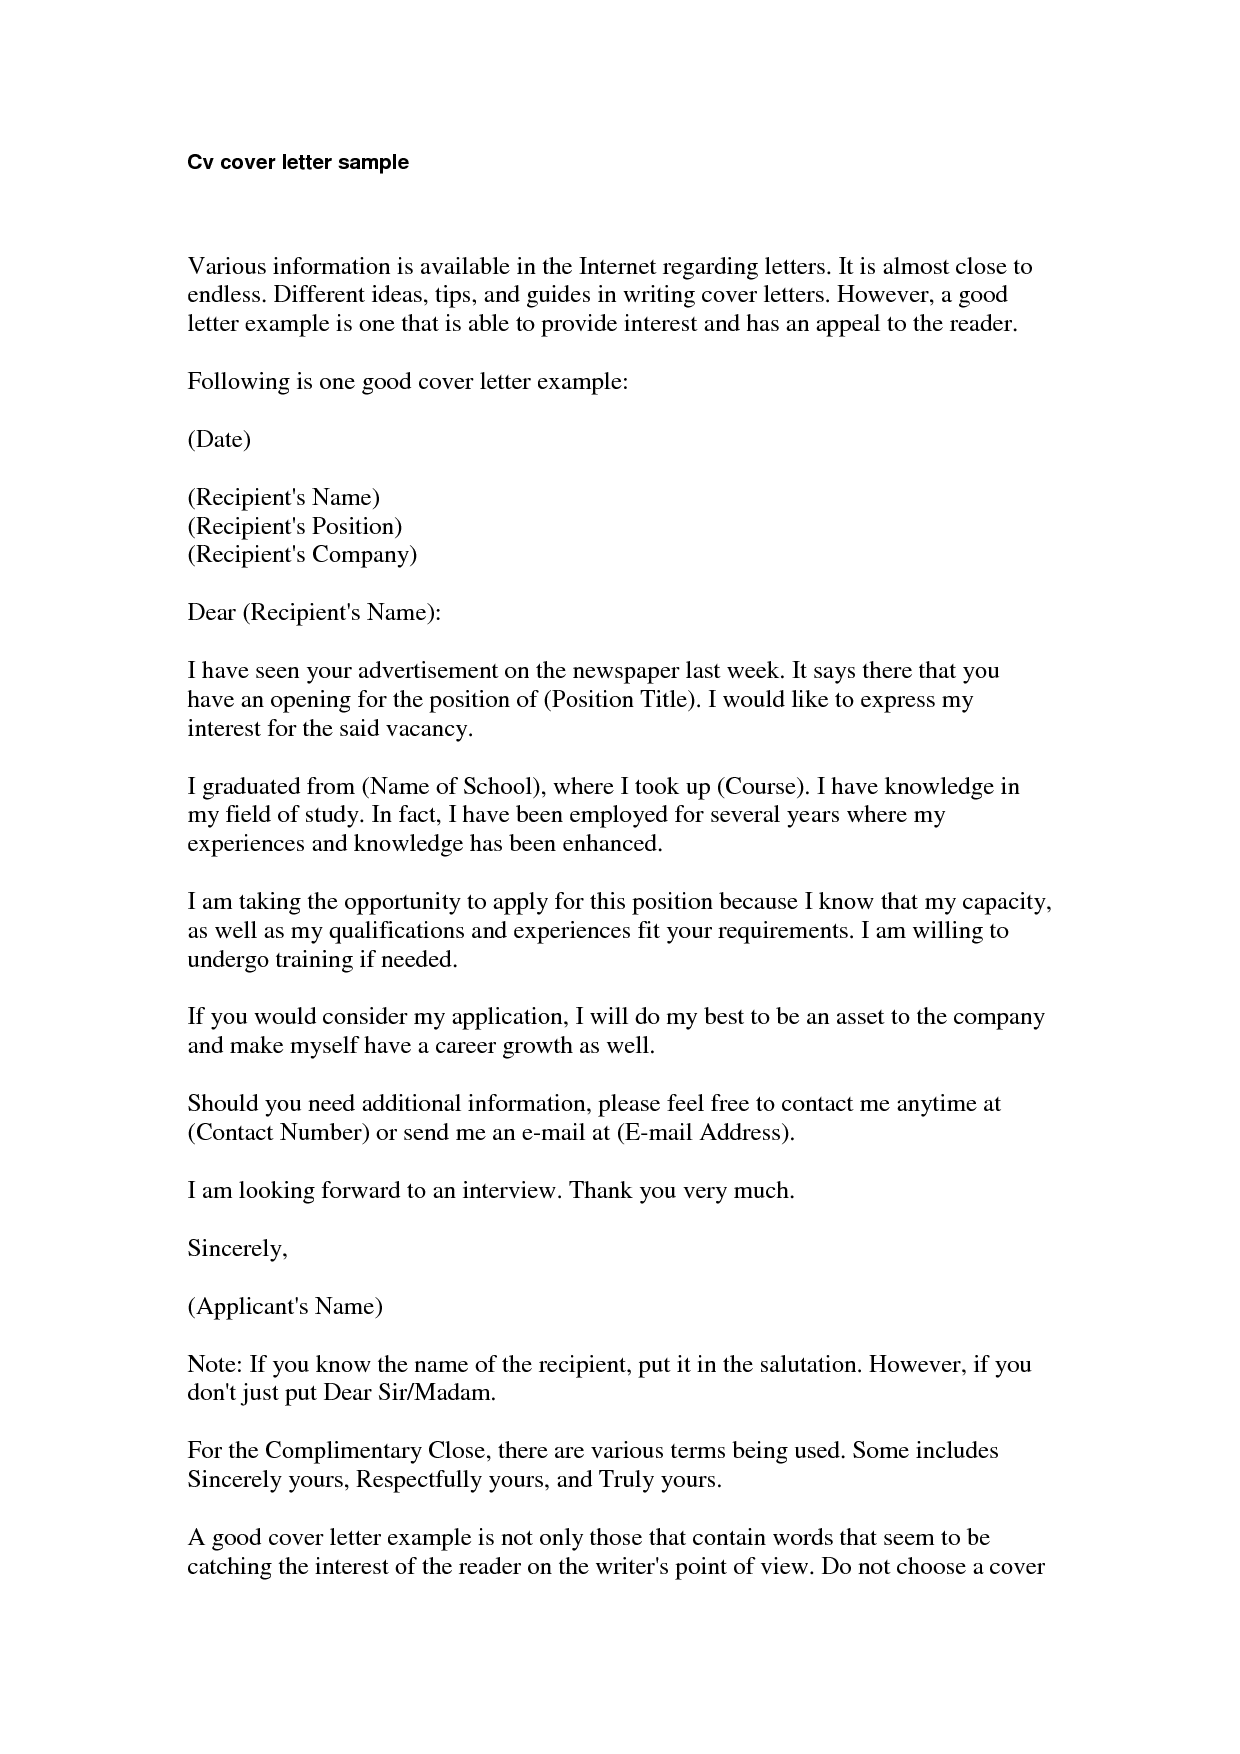 Resume Cover Letter http//www.jobresume.website/resume